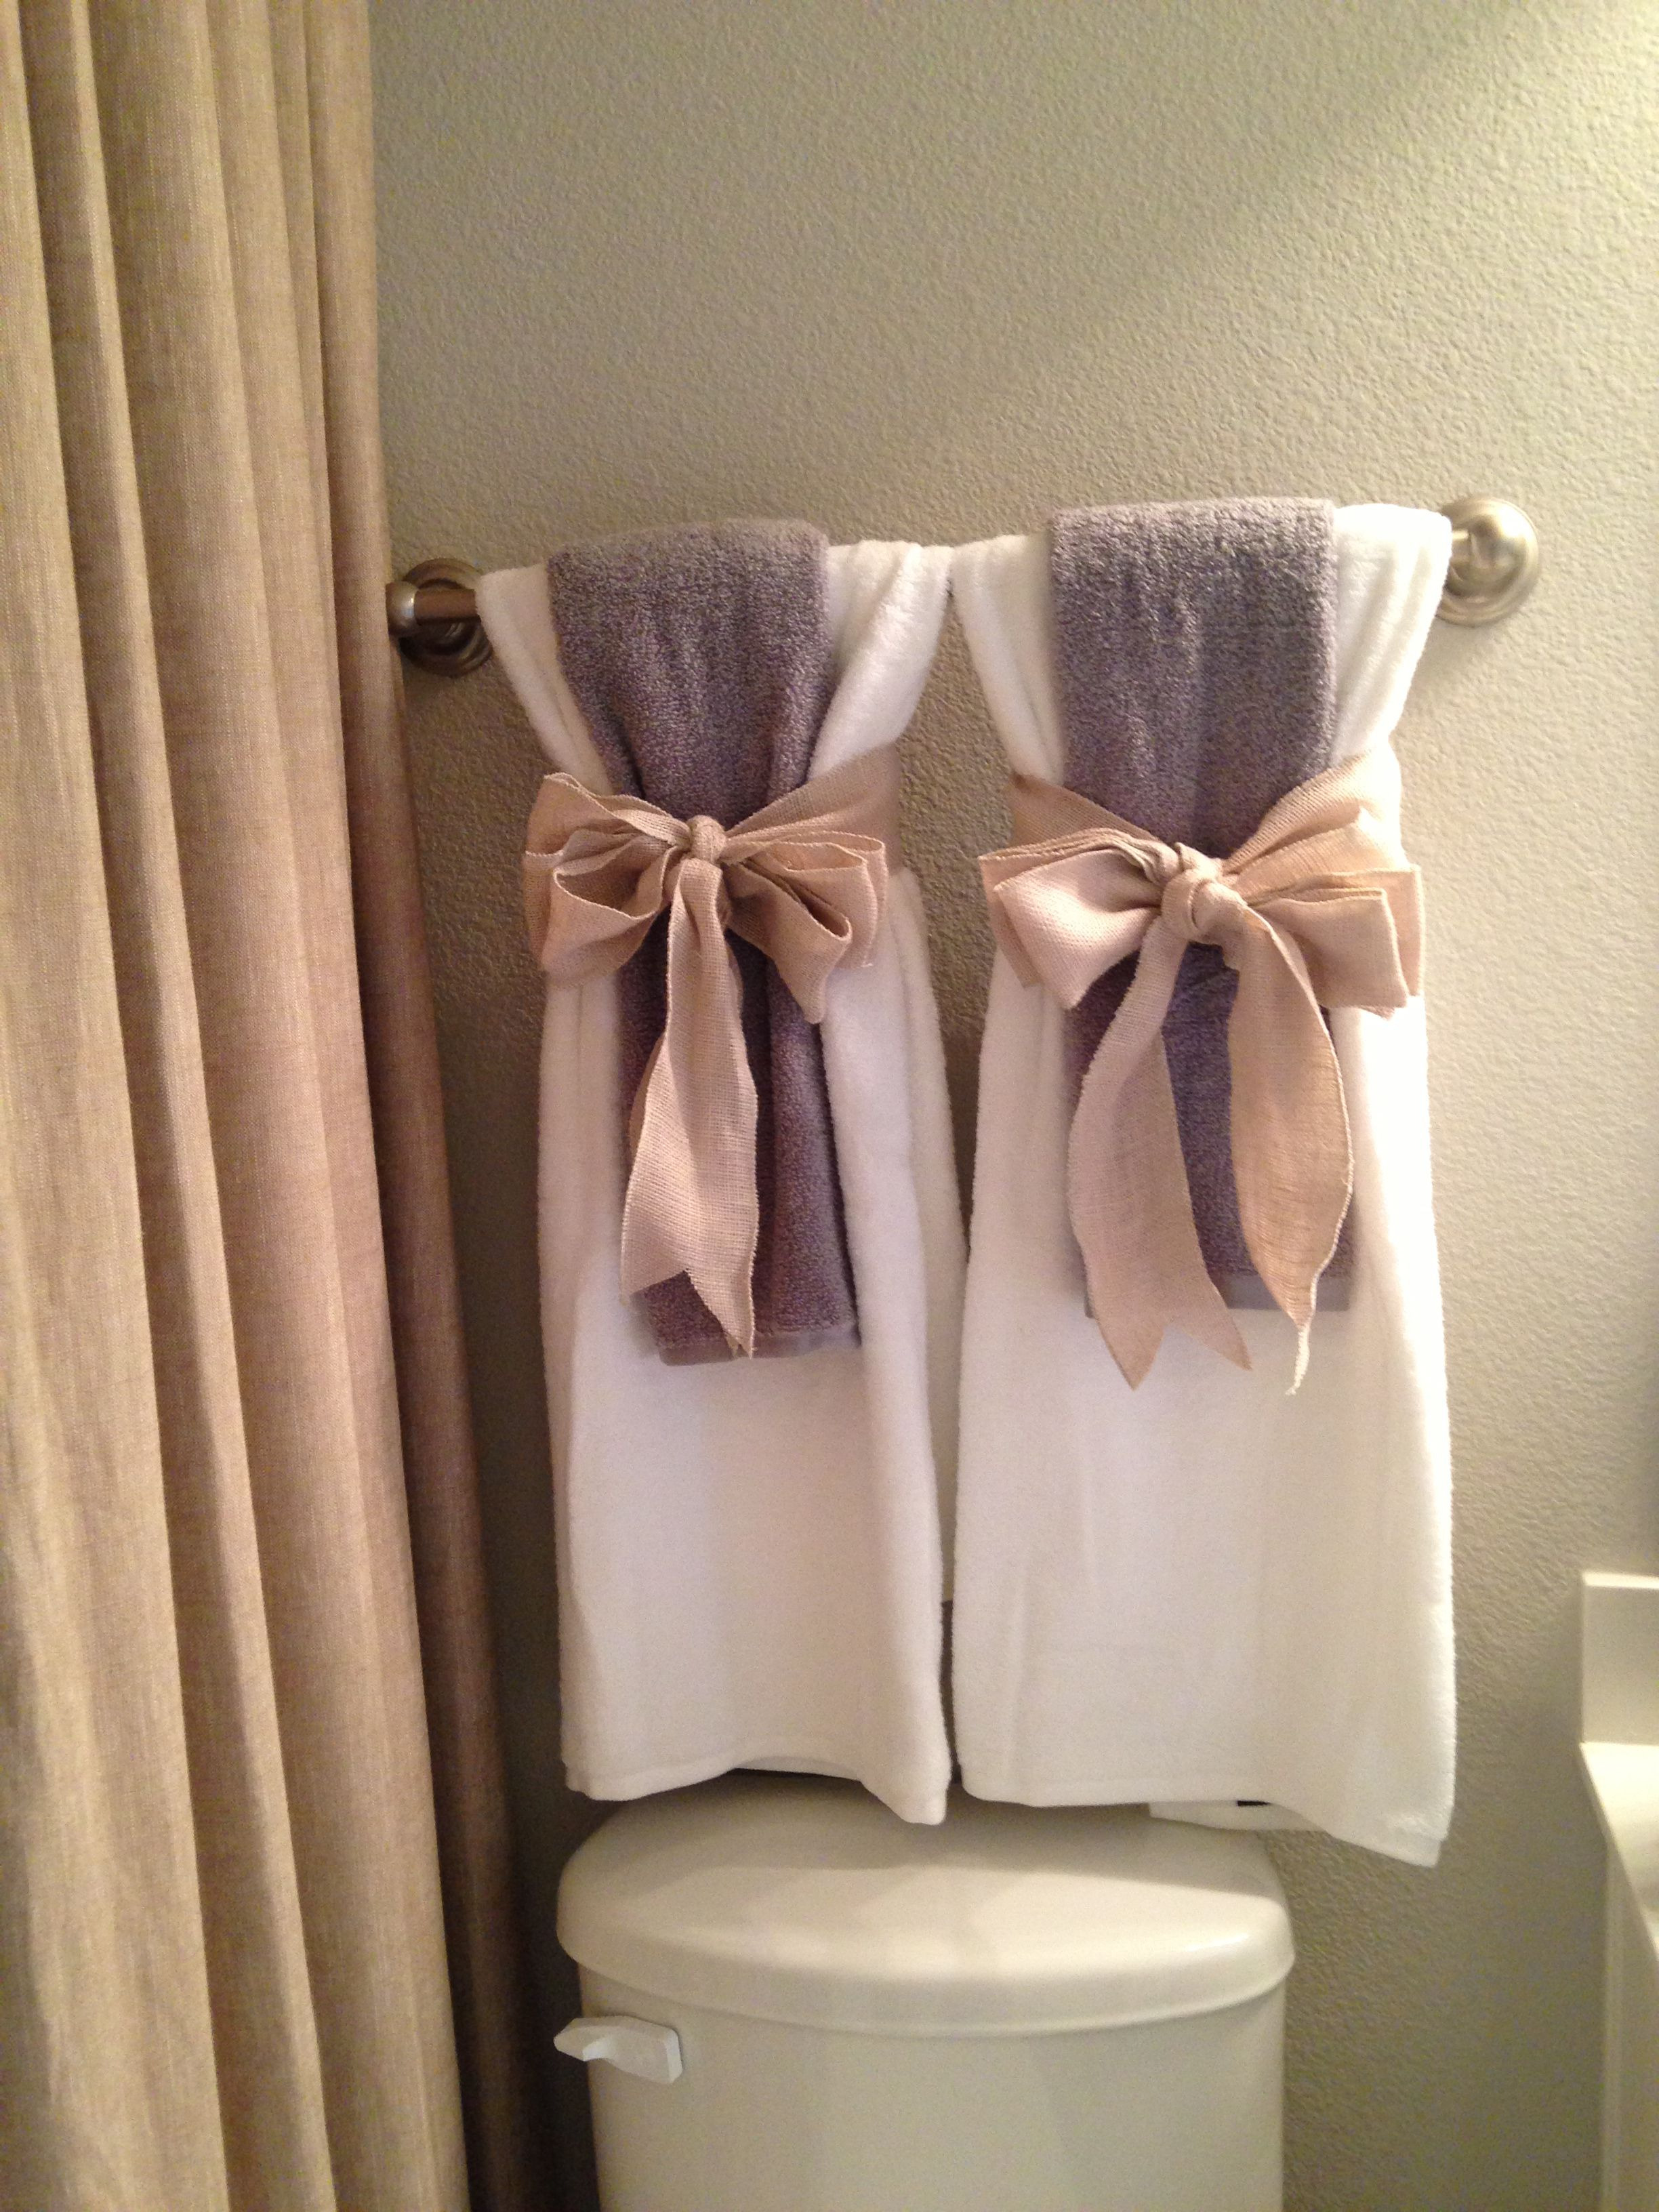 How to Decorate Bathroom towels Awesome Show towels …